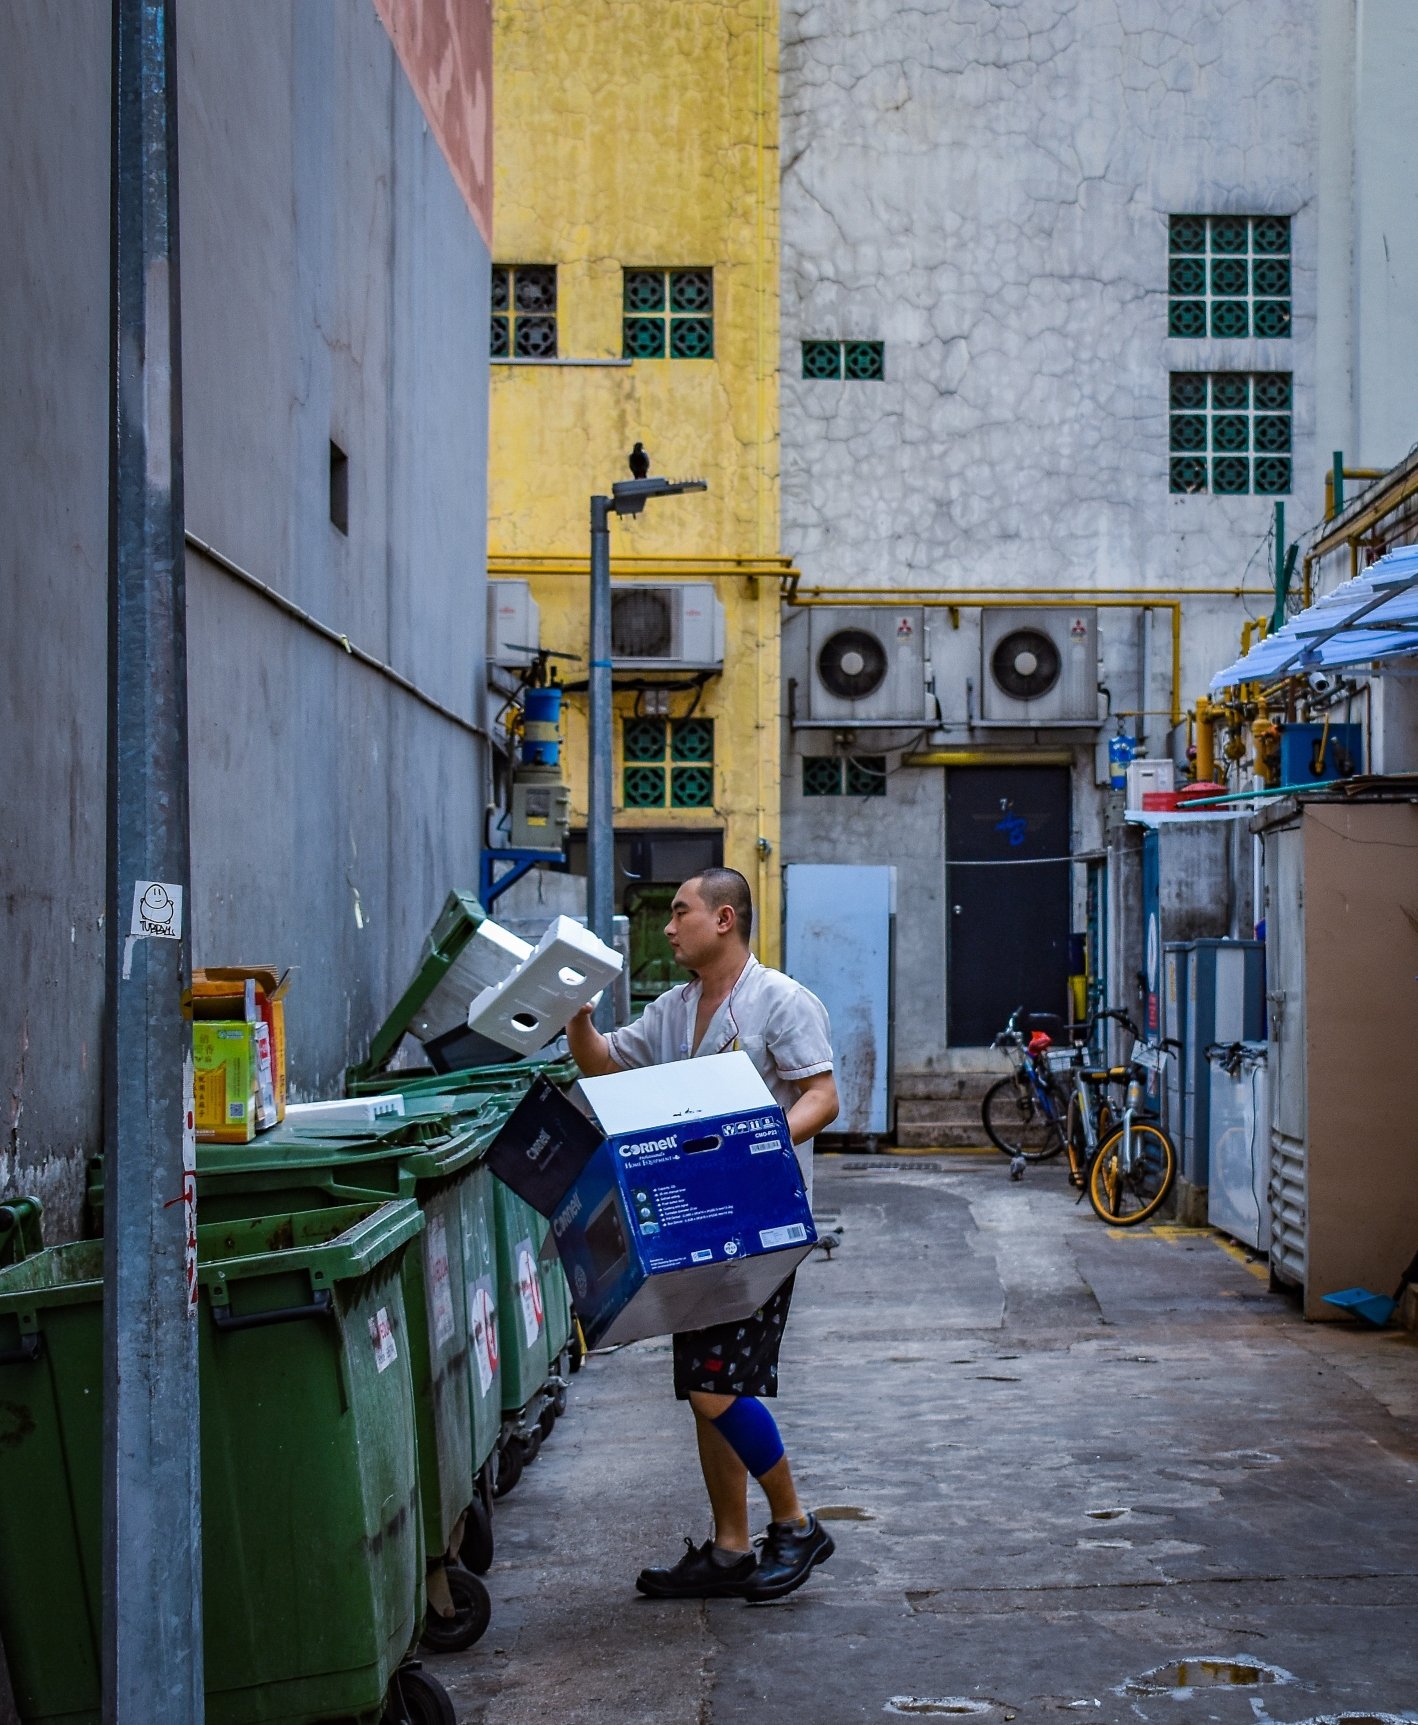 man-taking-out-trash-in-alley